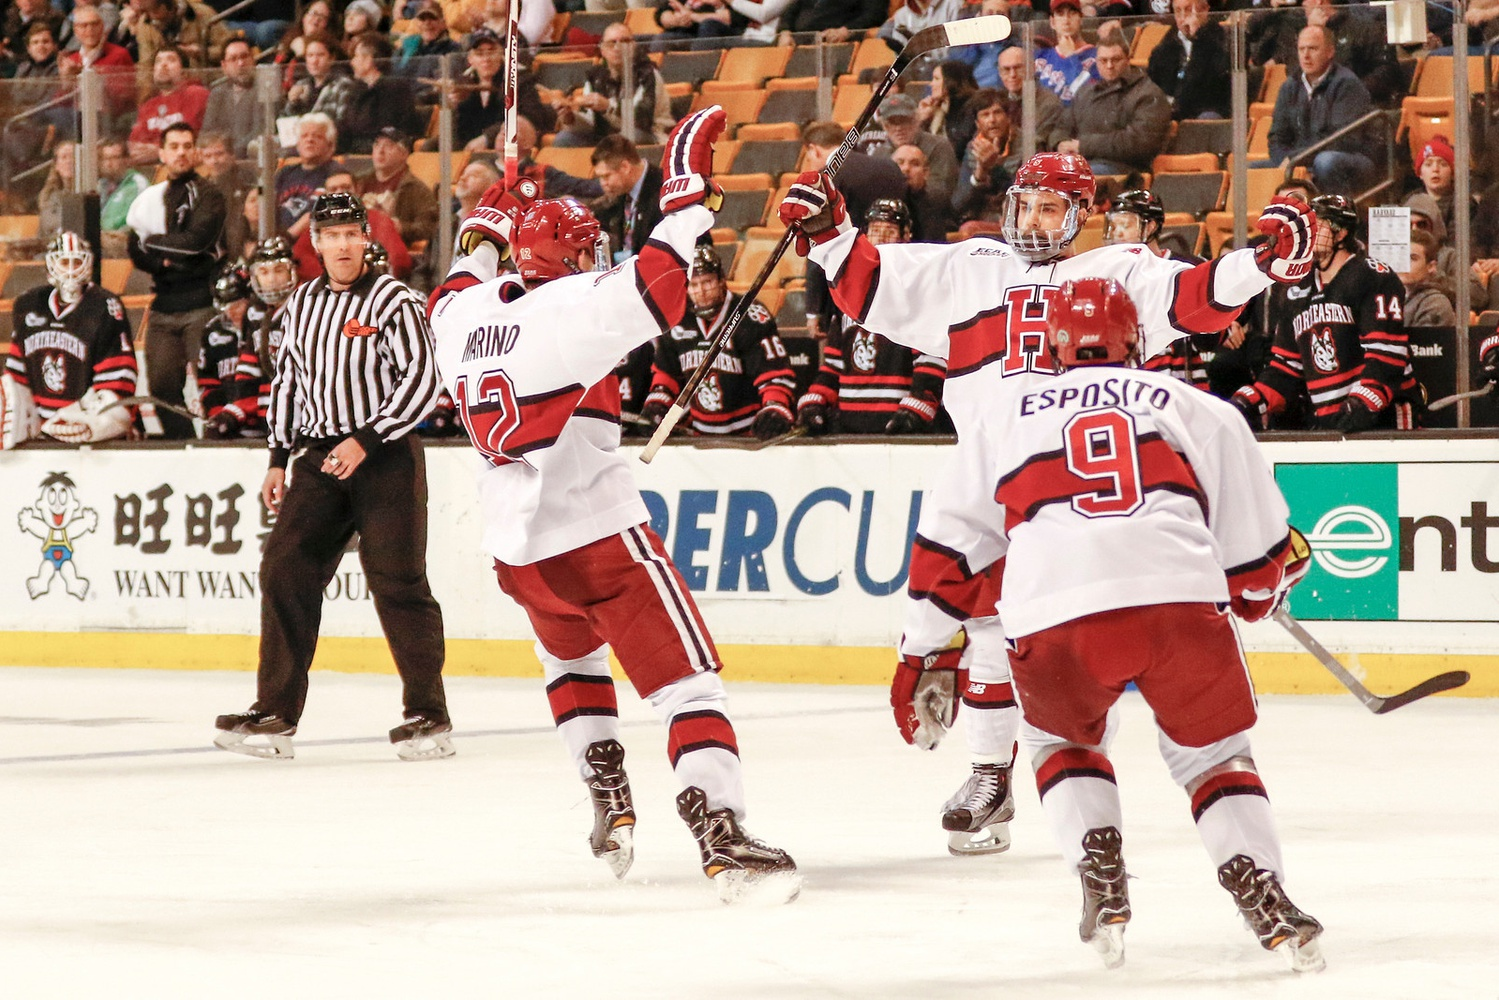 In 2017, Harvard took down Northeastern in the Beanpot semifinal round en route to its first tournament crown since 1993.